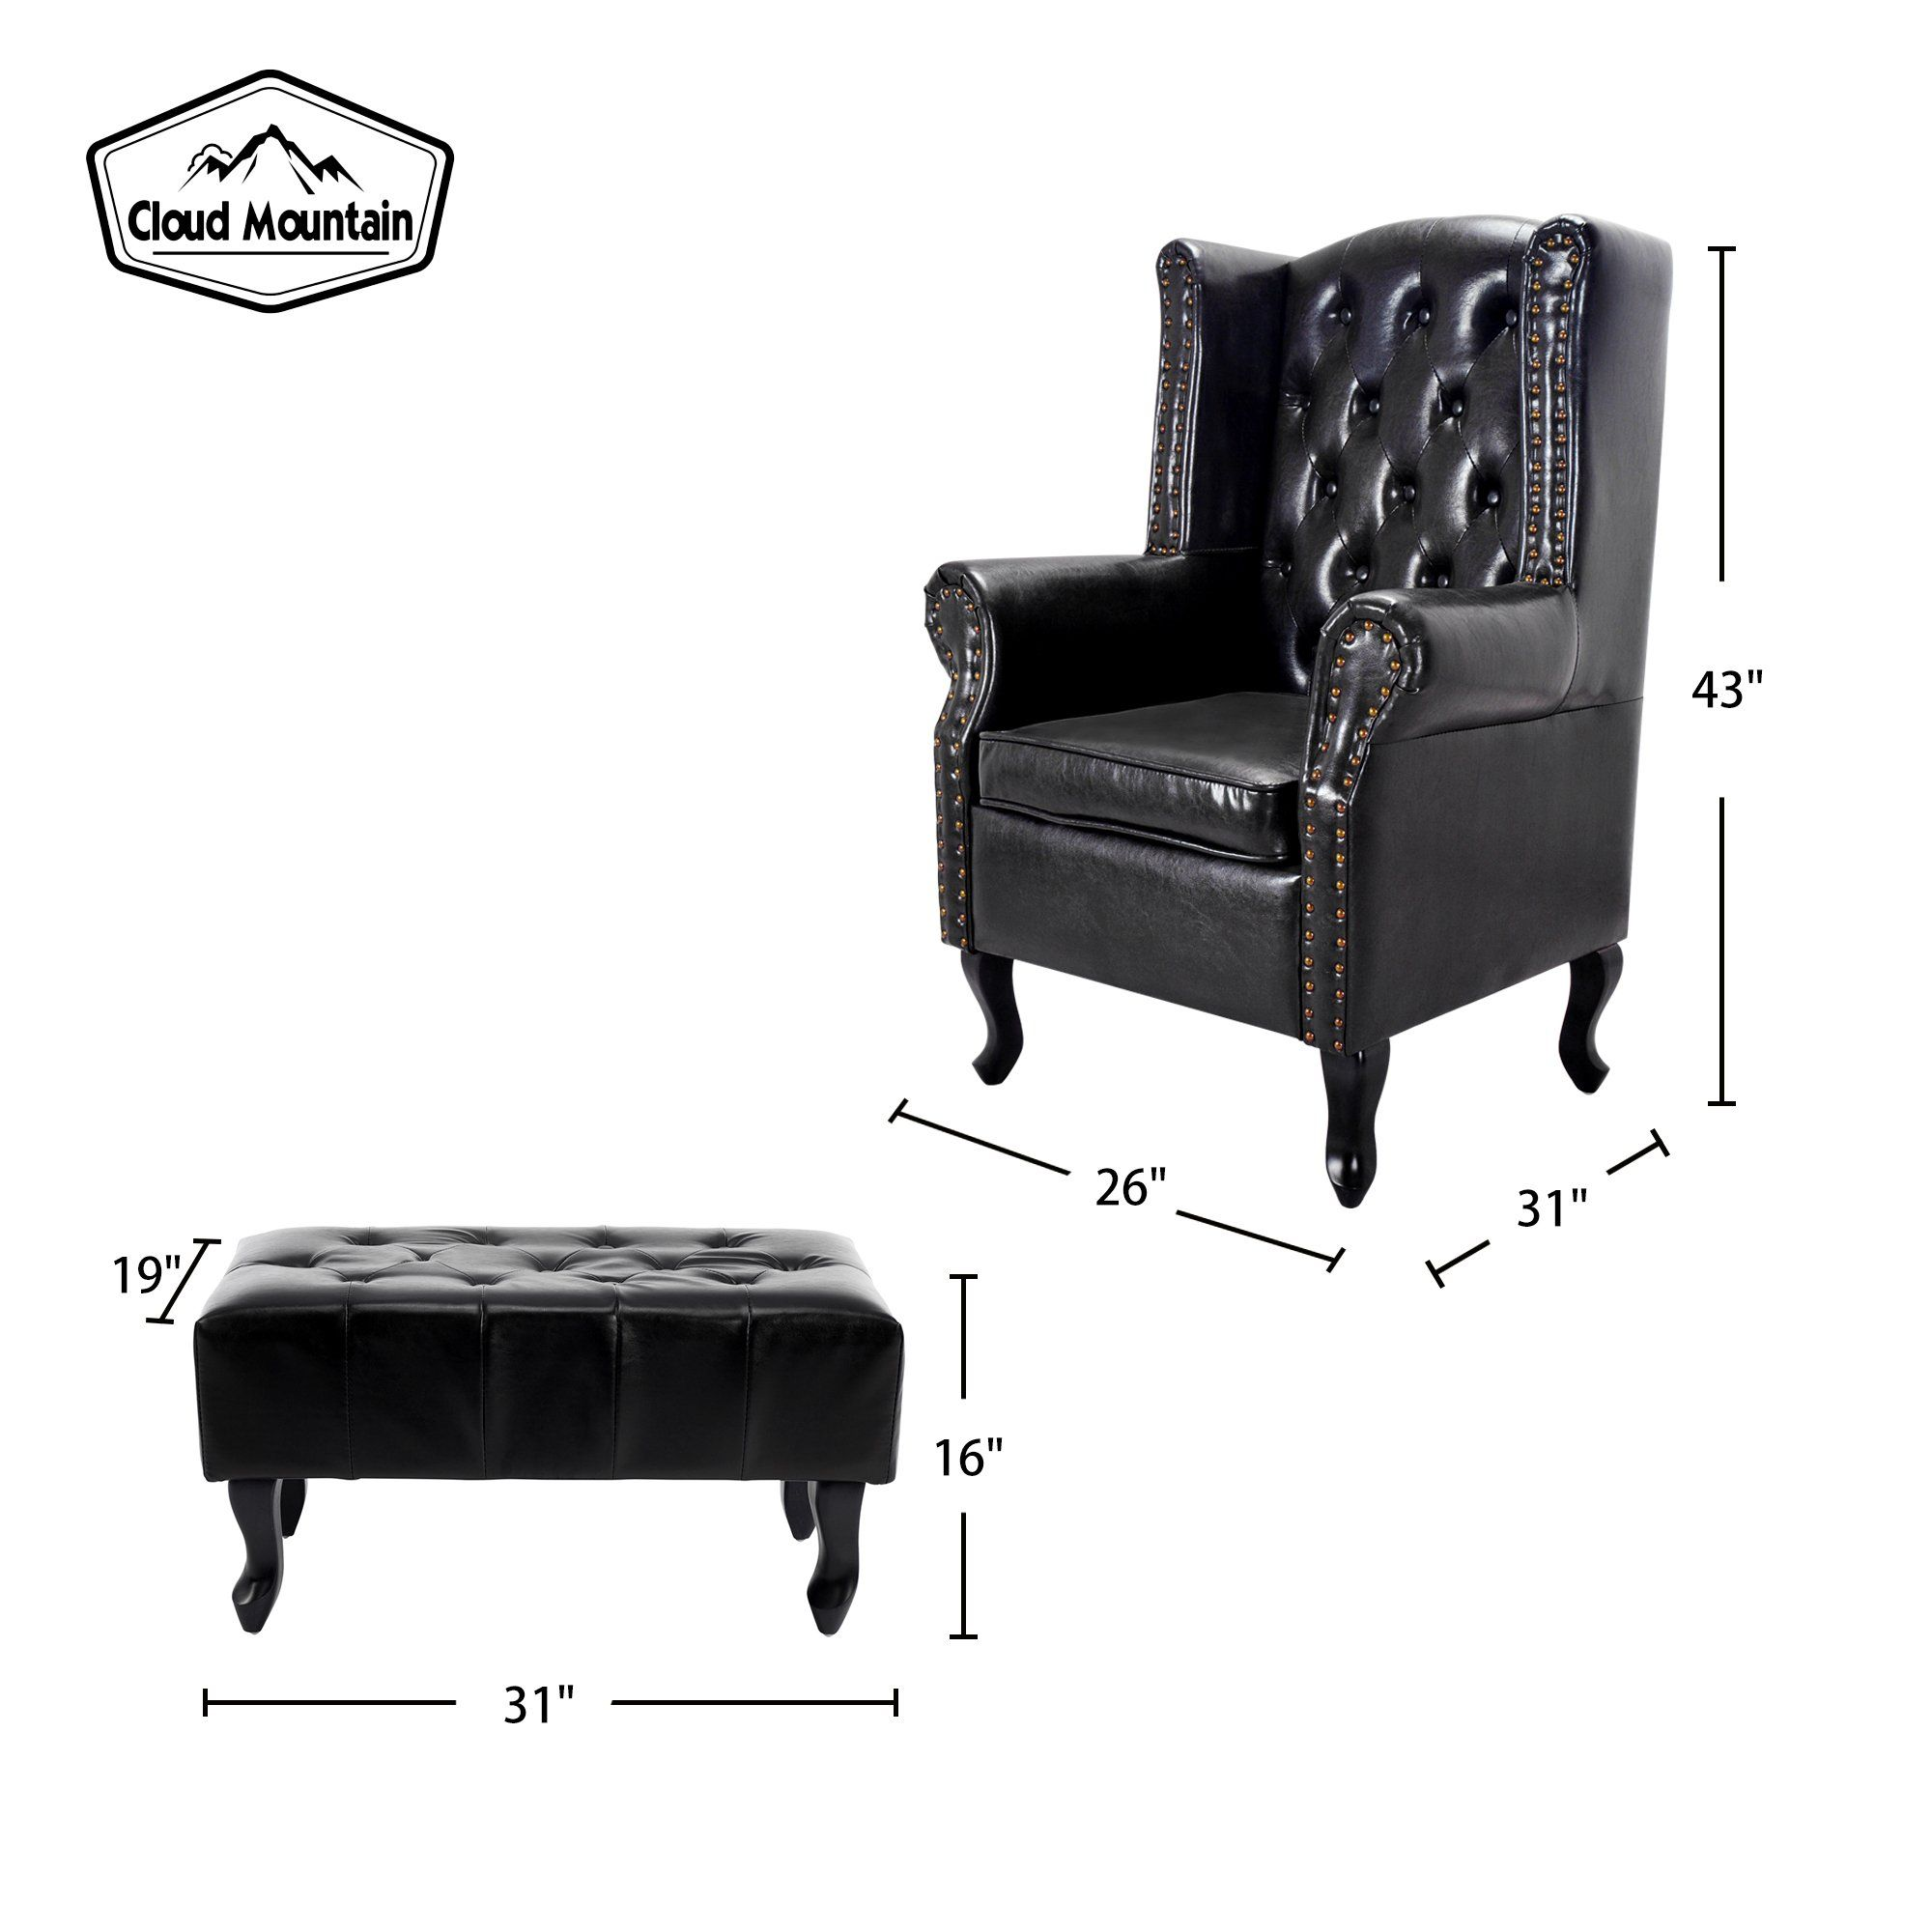 Cloud Mountain Tufted Accent Chair And Ottoman Black Leather Club